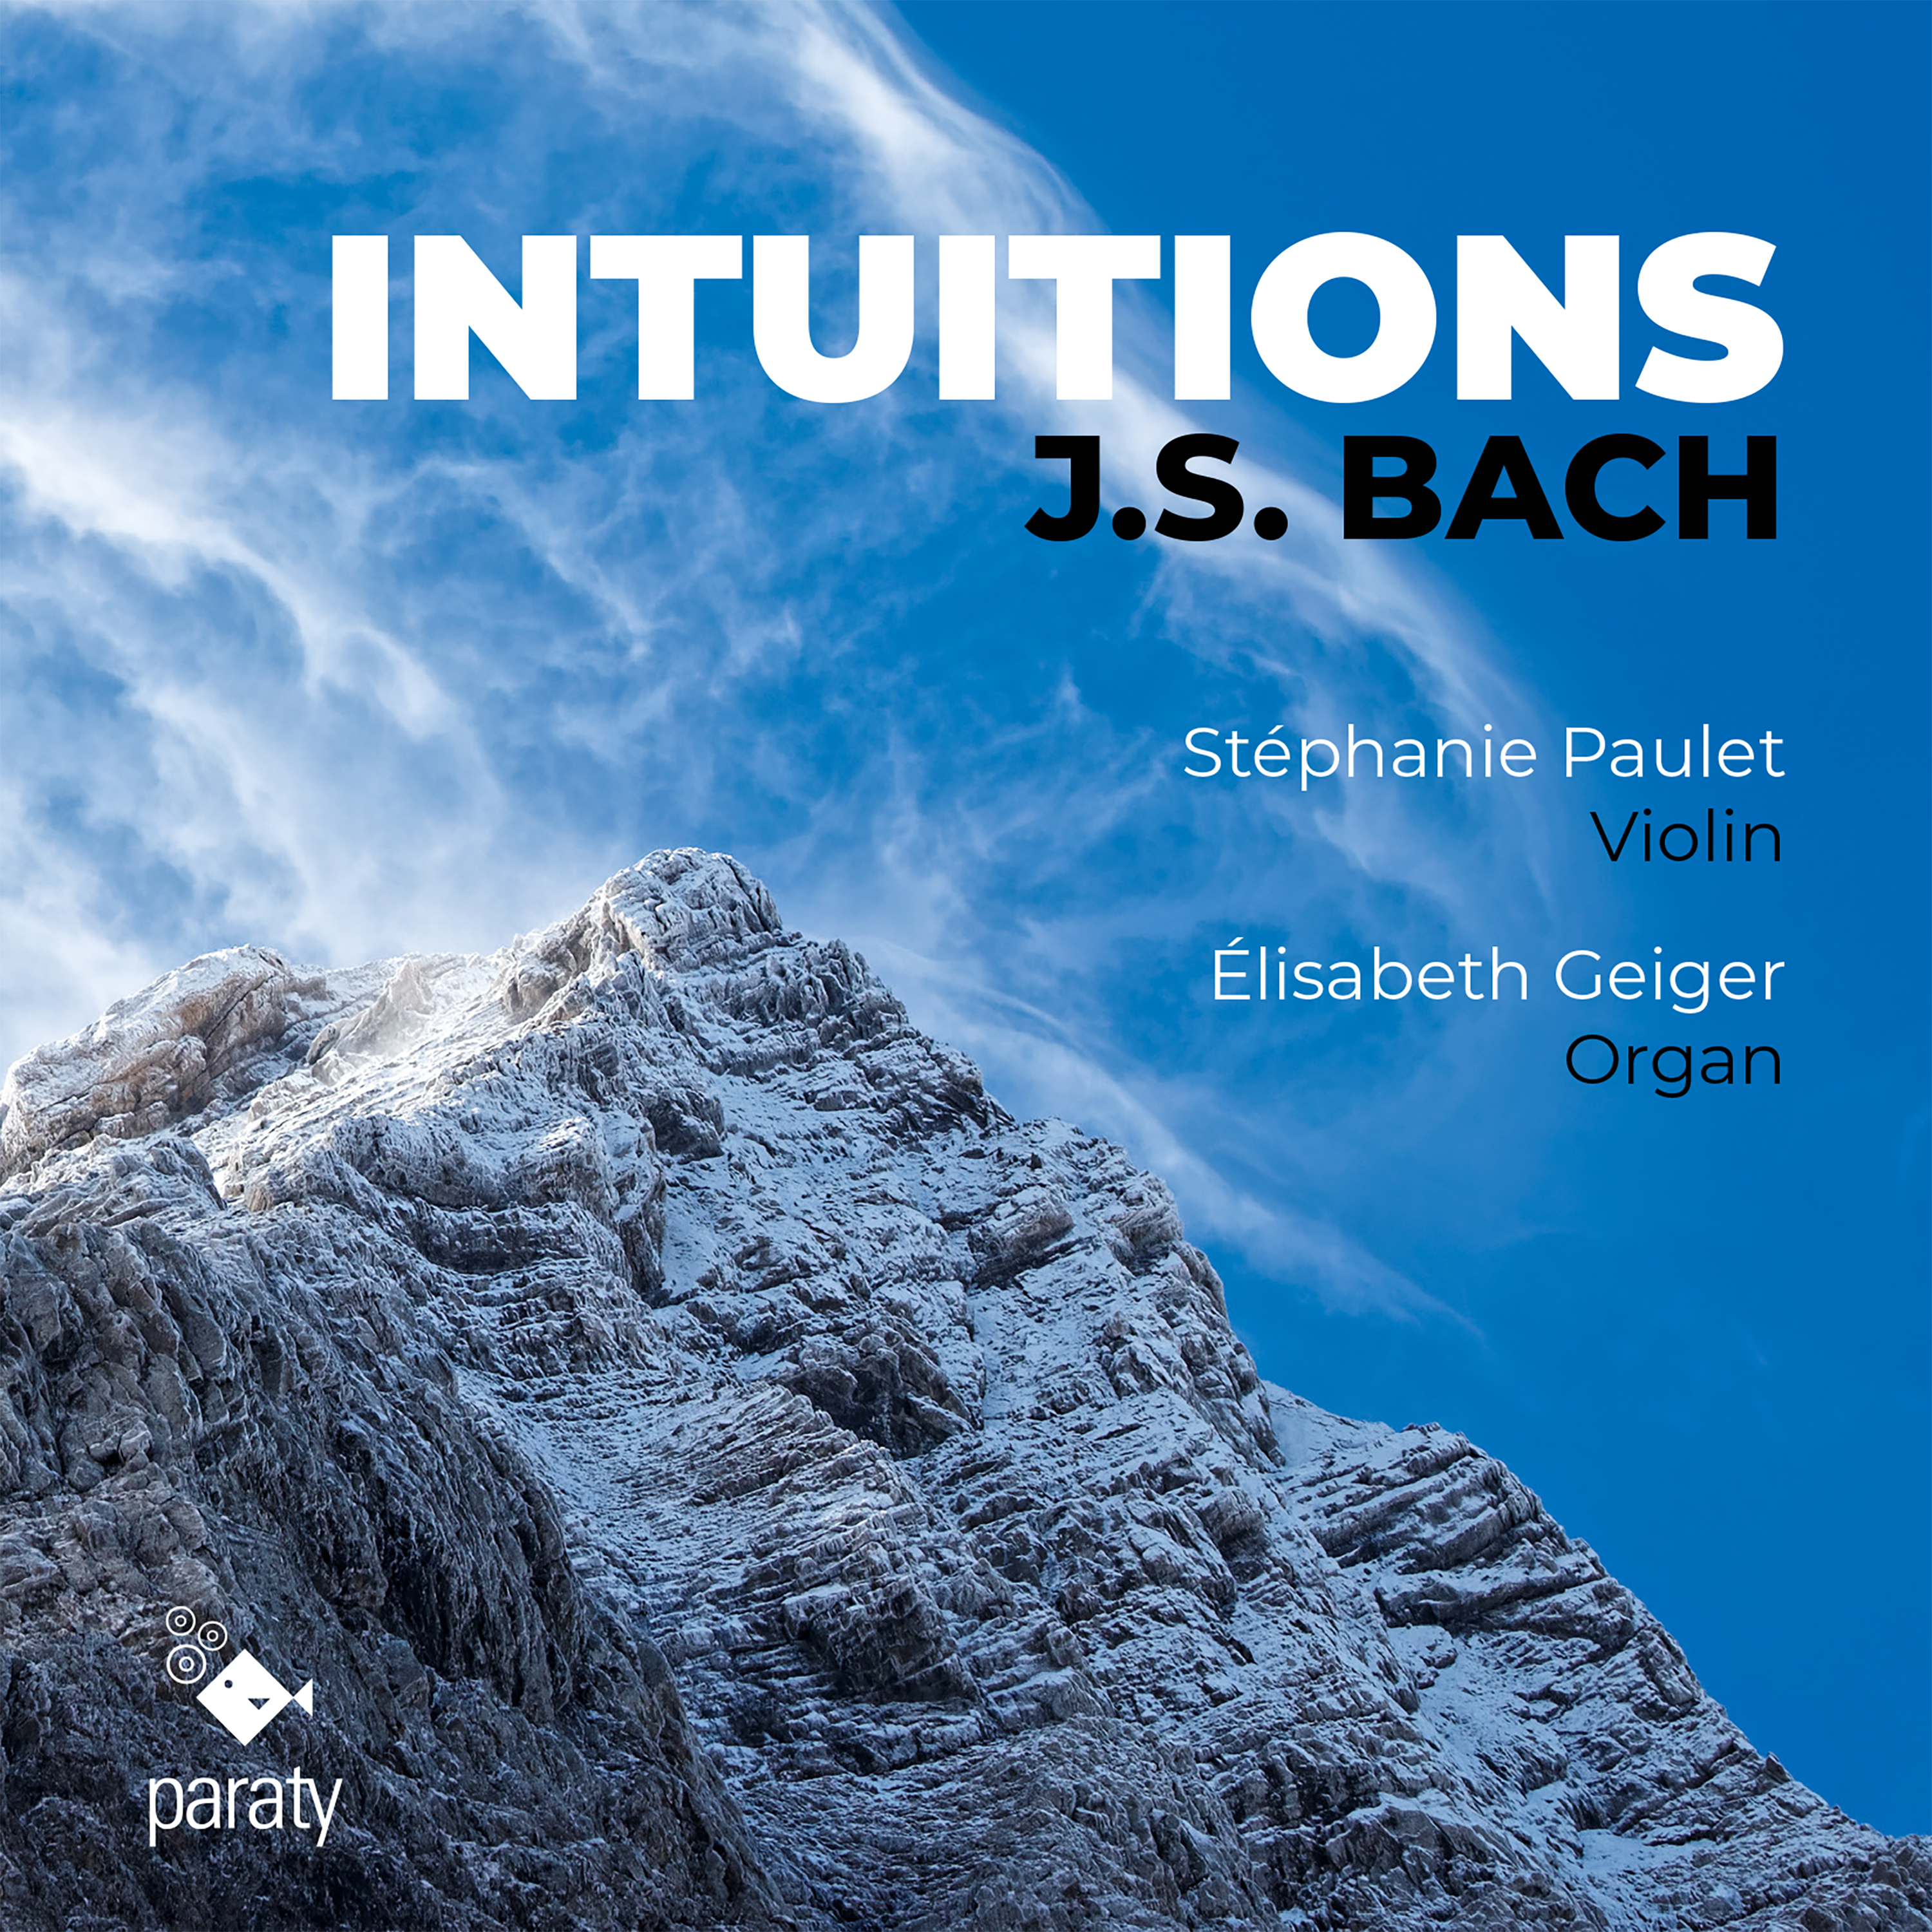 INTUITIONS| J.S. Bach